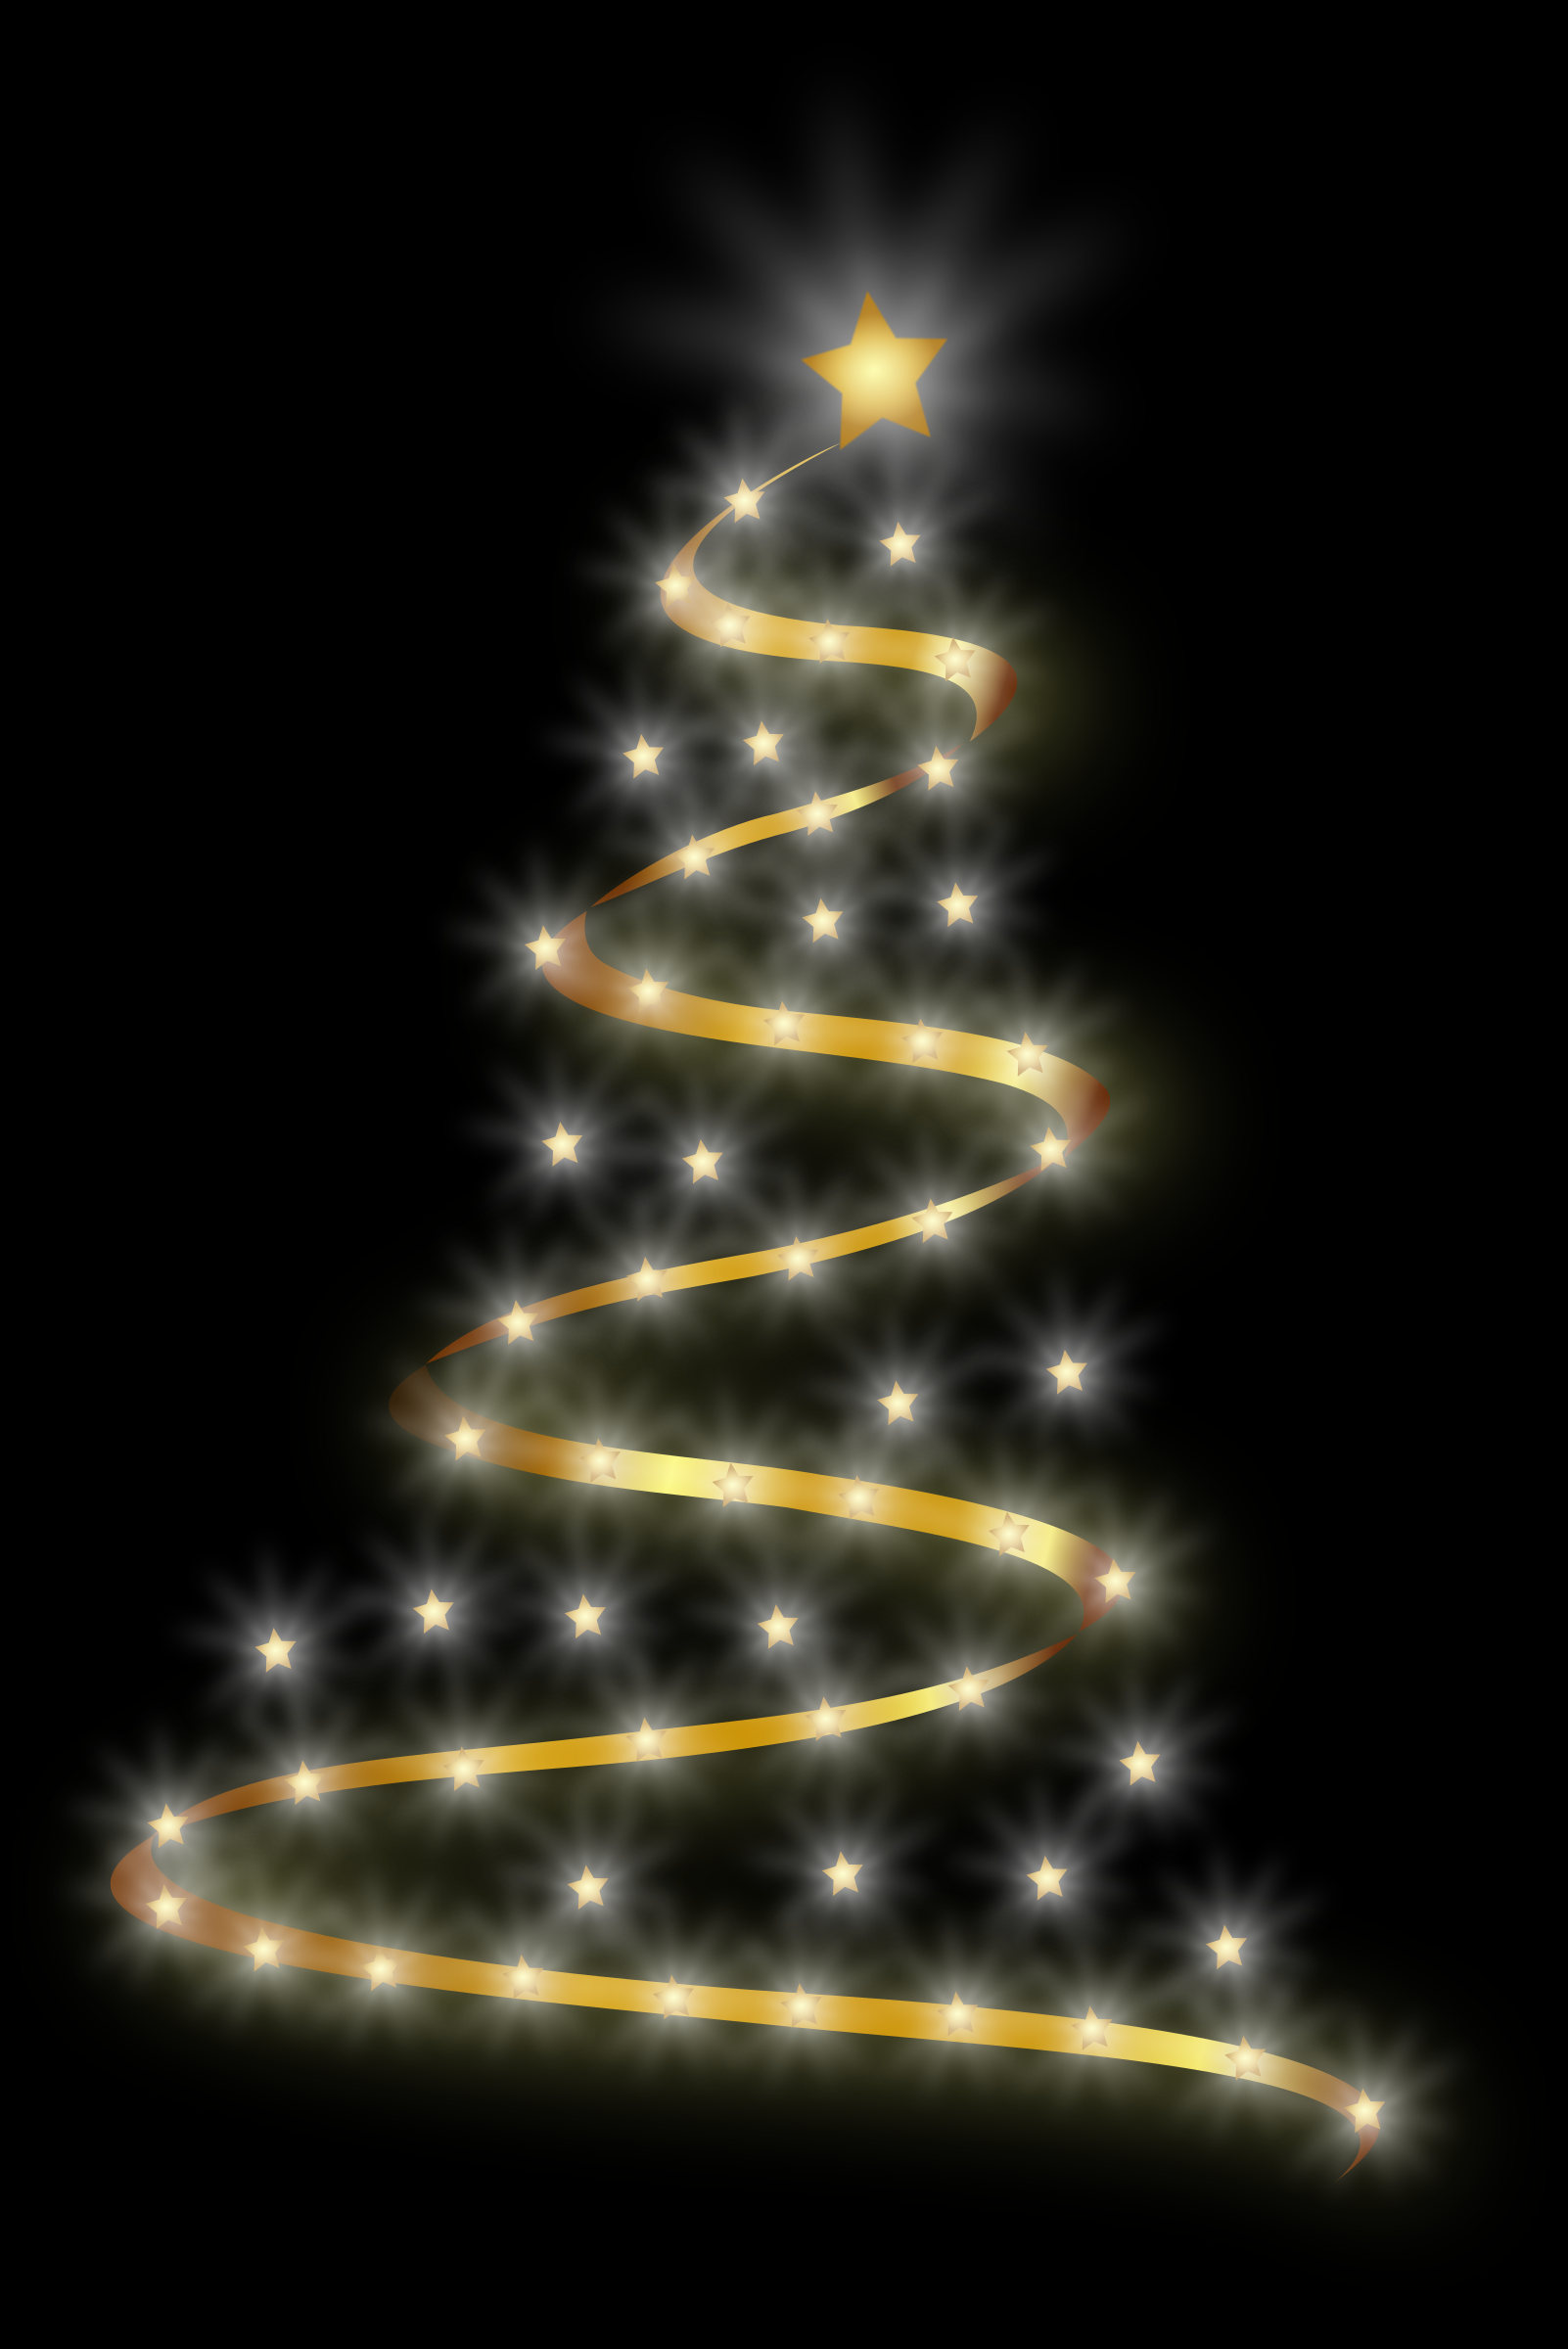 Modern Christmas Tree 4 by Merlin2525